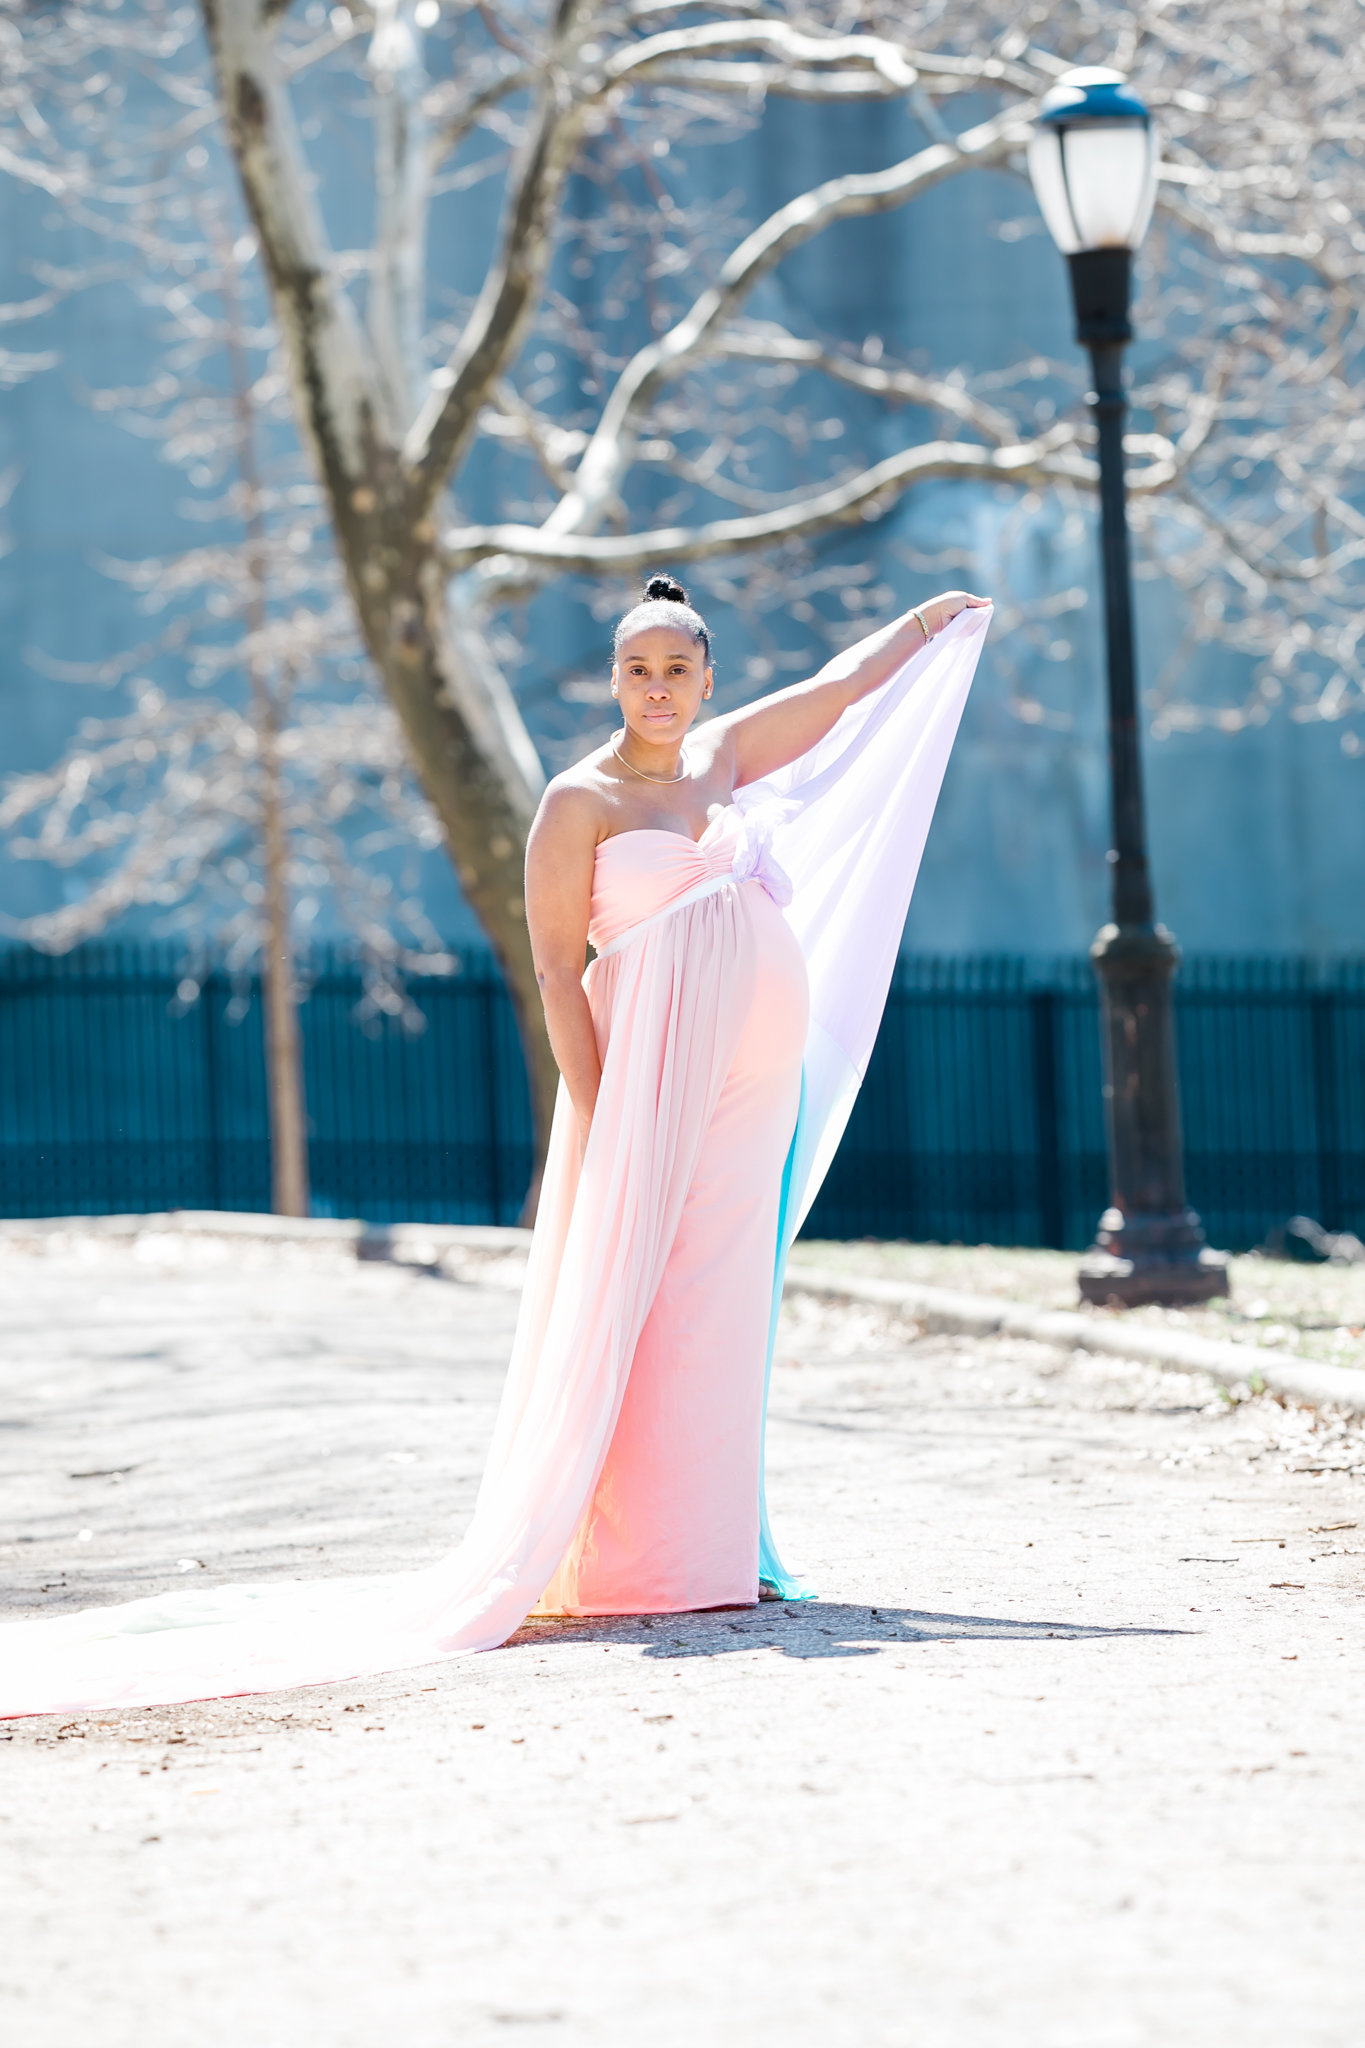 Dreamcatcher Rose Studios - maternity - brooklyn ny - holding dress high